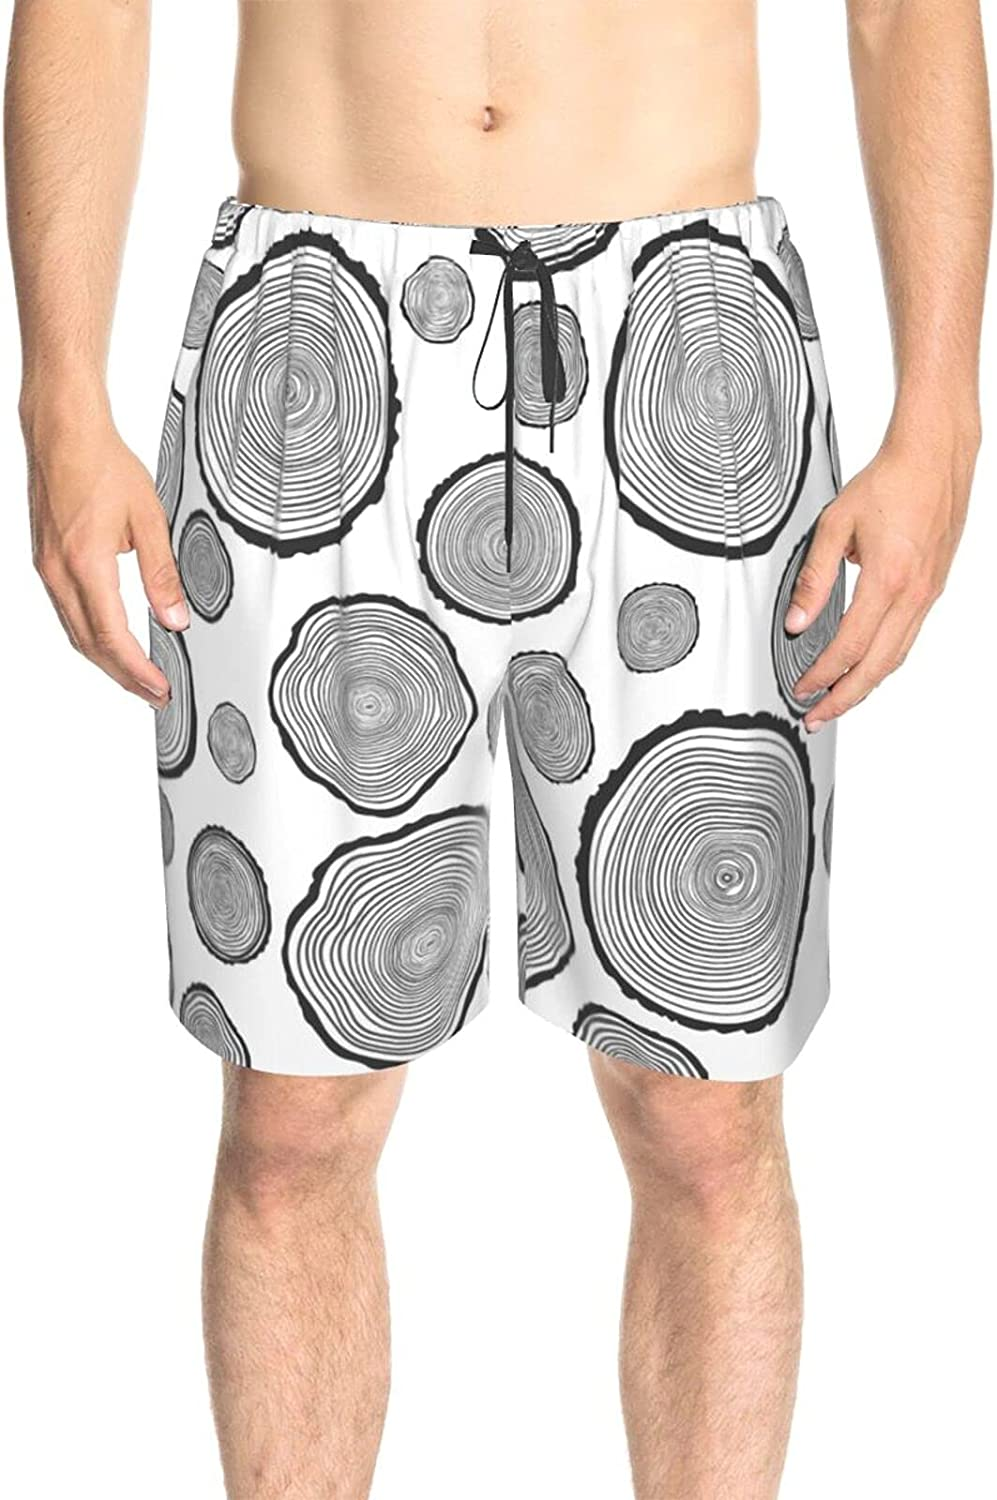 Feim-AO Mens Swim Trunks Vintage Tree Rings Pattern Breathable Beach Shorts Athletic Board Shorts Quick Dry with Pockets